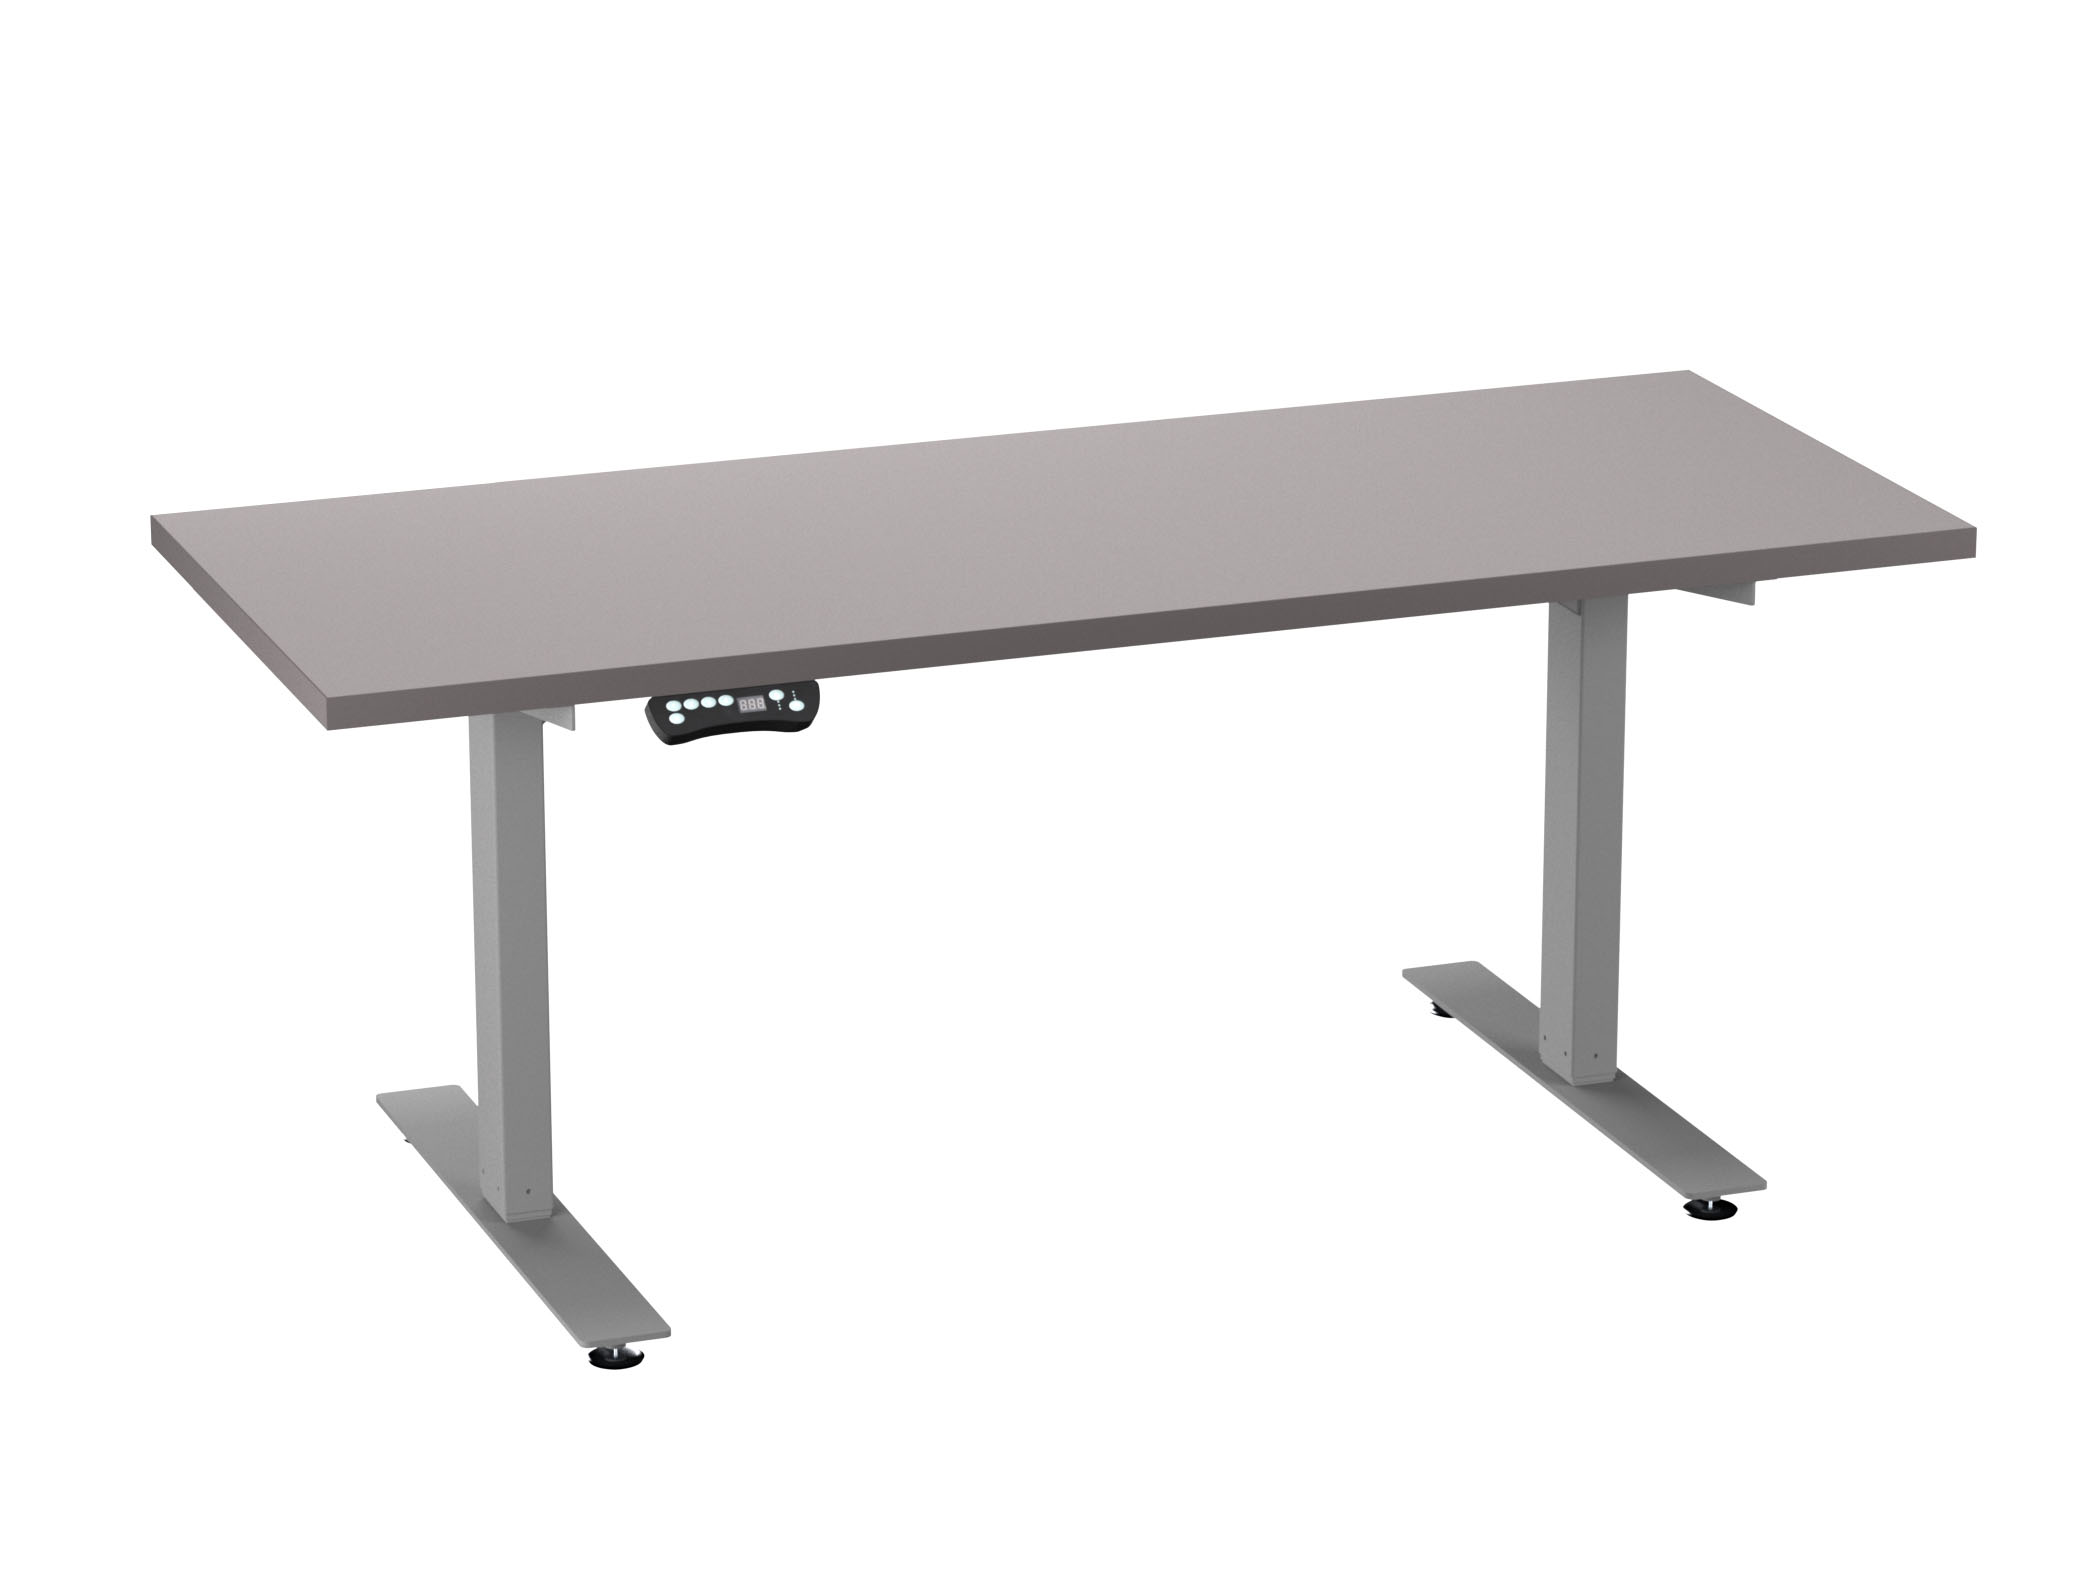 Executive Furniture from Compel - HiLo adjustable table